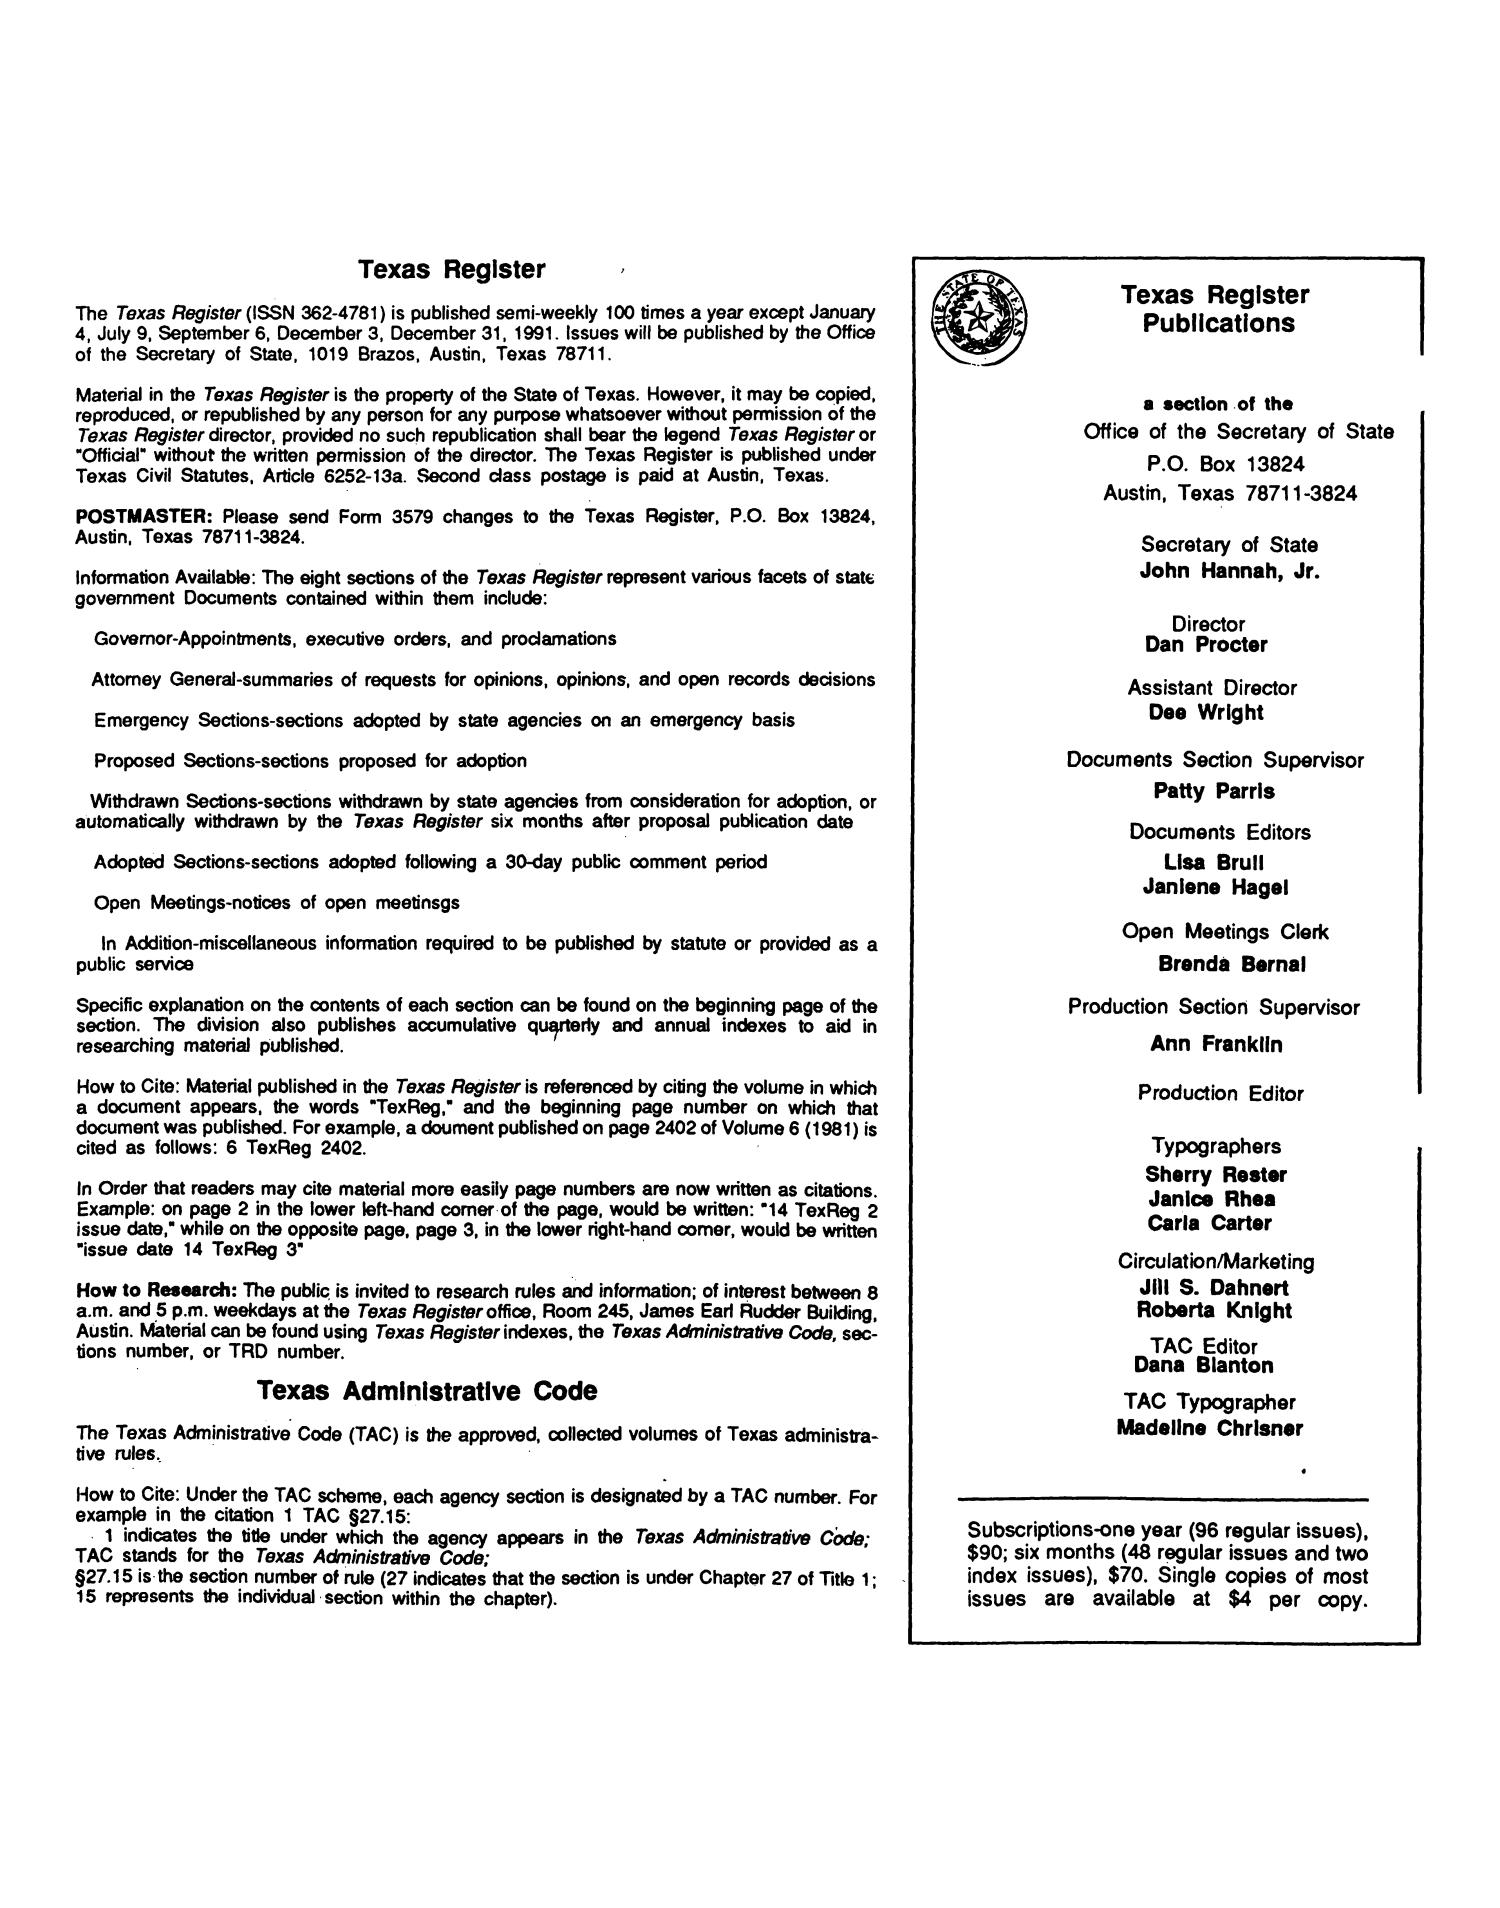 Texas Register, Volume 16, Number 57, Pages 4193-4244, August 2, 1991                                                                                                      None